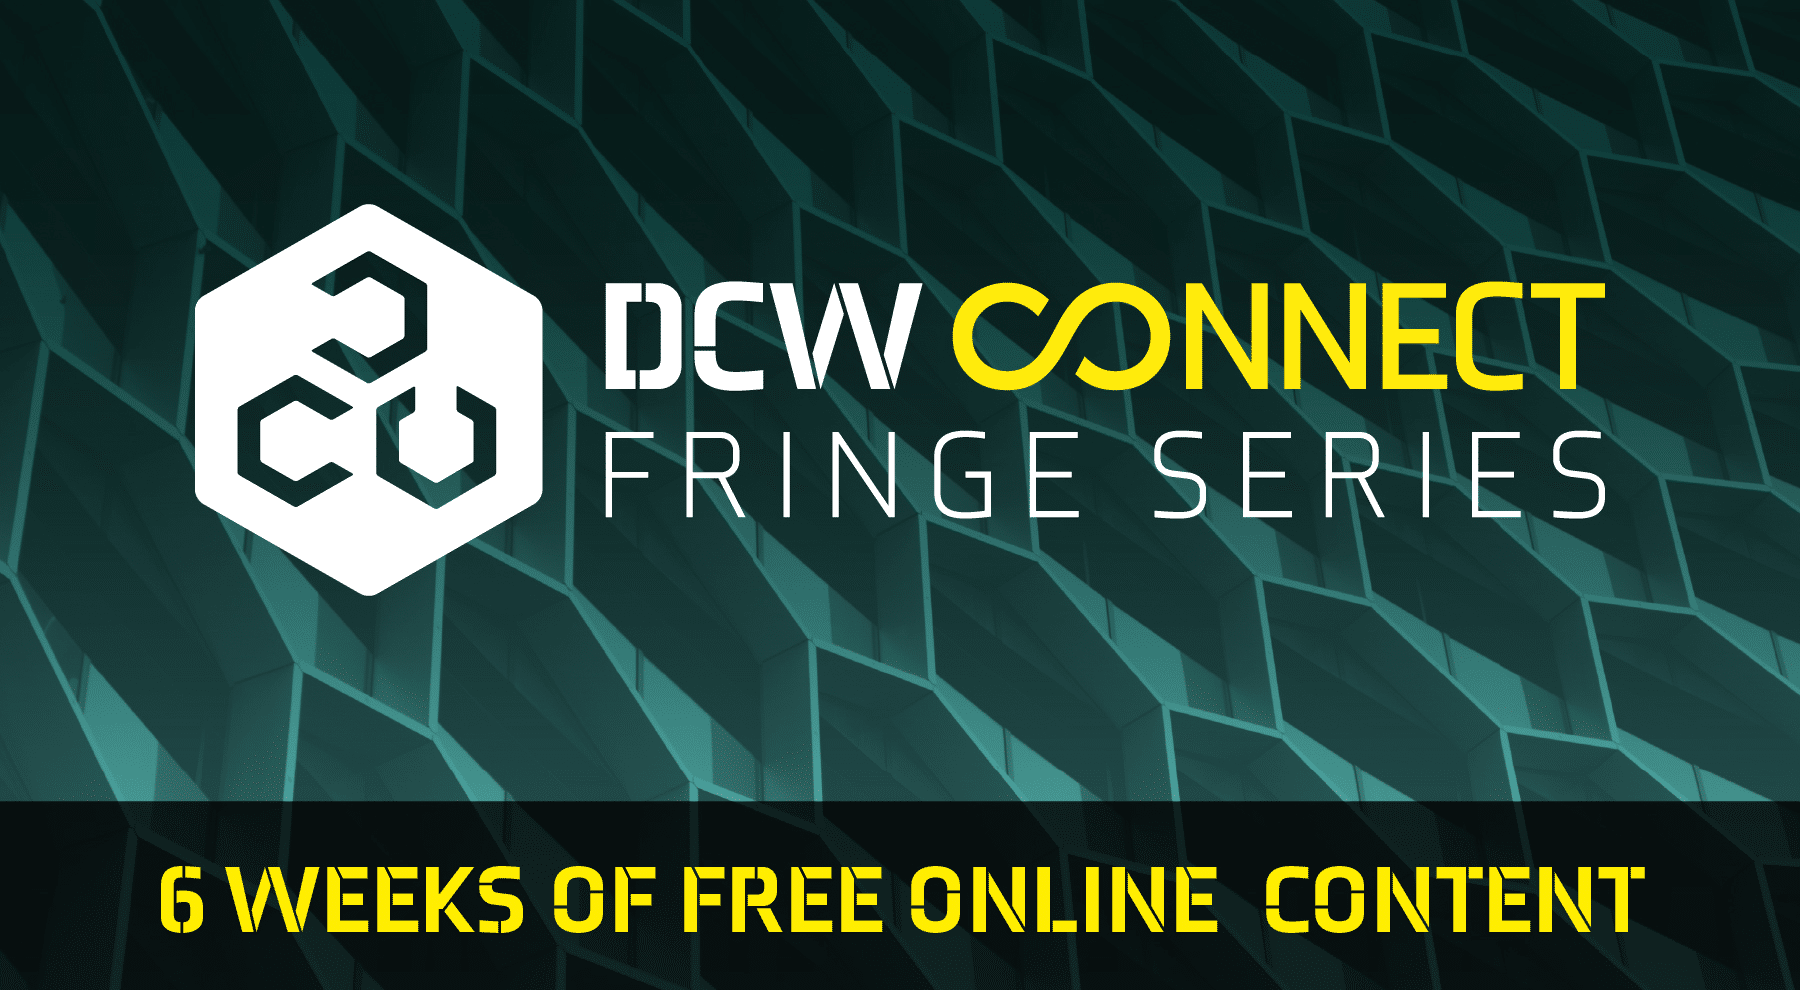 https://www.digitalconstructionweek.com/wp-content/uploads/2021/04/DCW_Connect_Fringe_Social_900x675_Learn_More.png